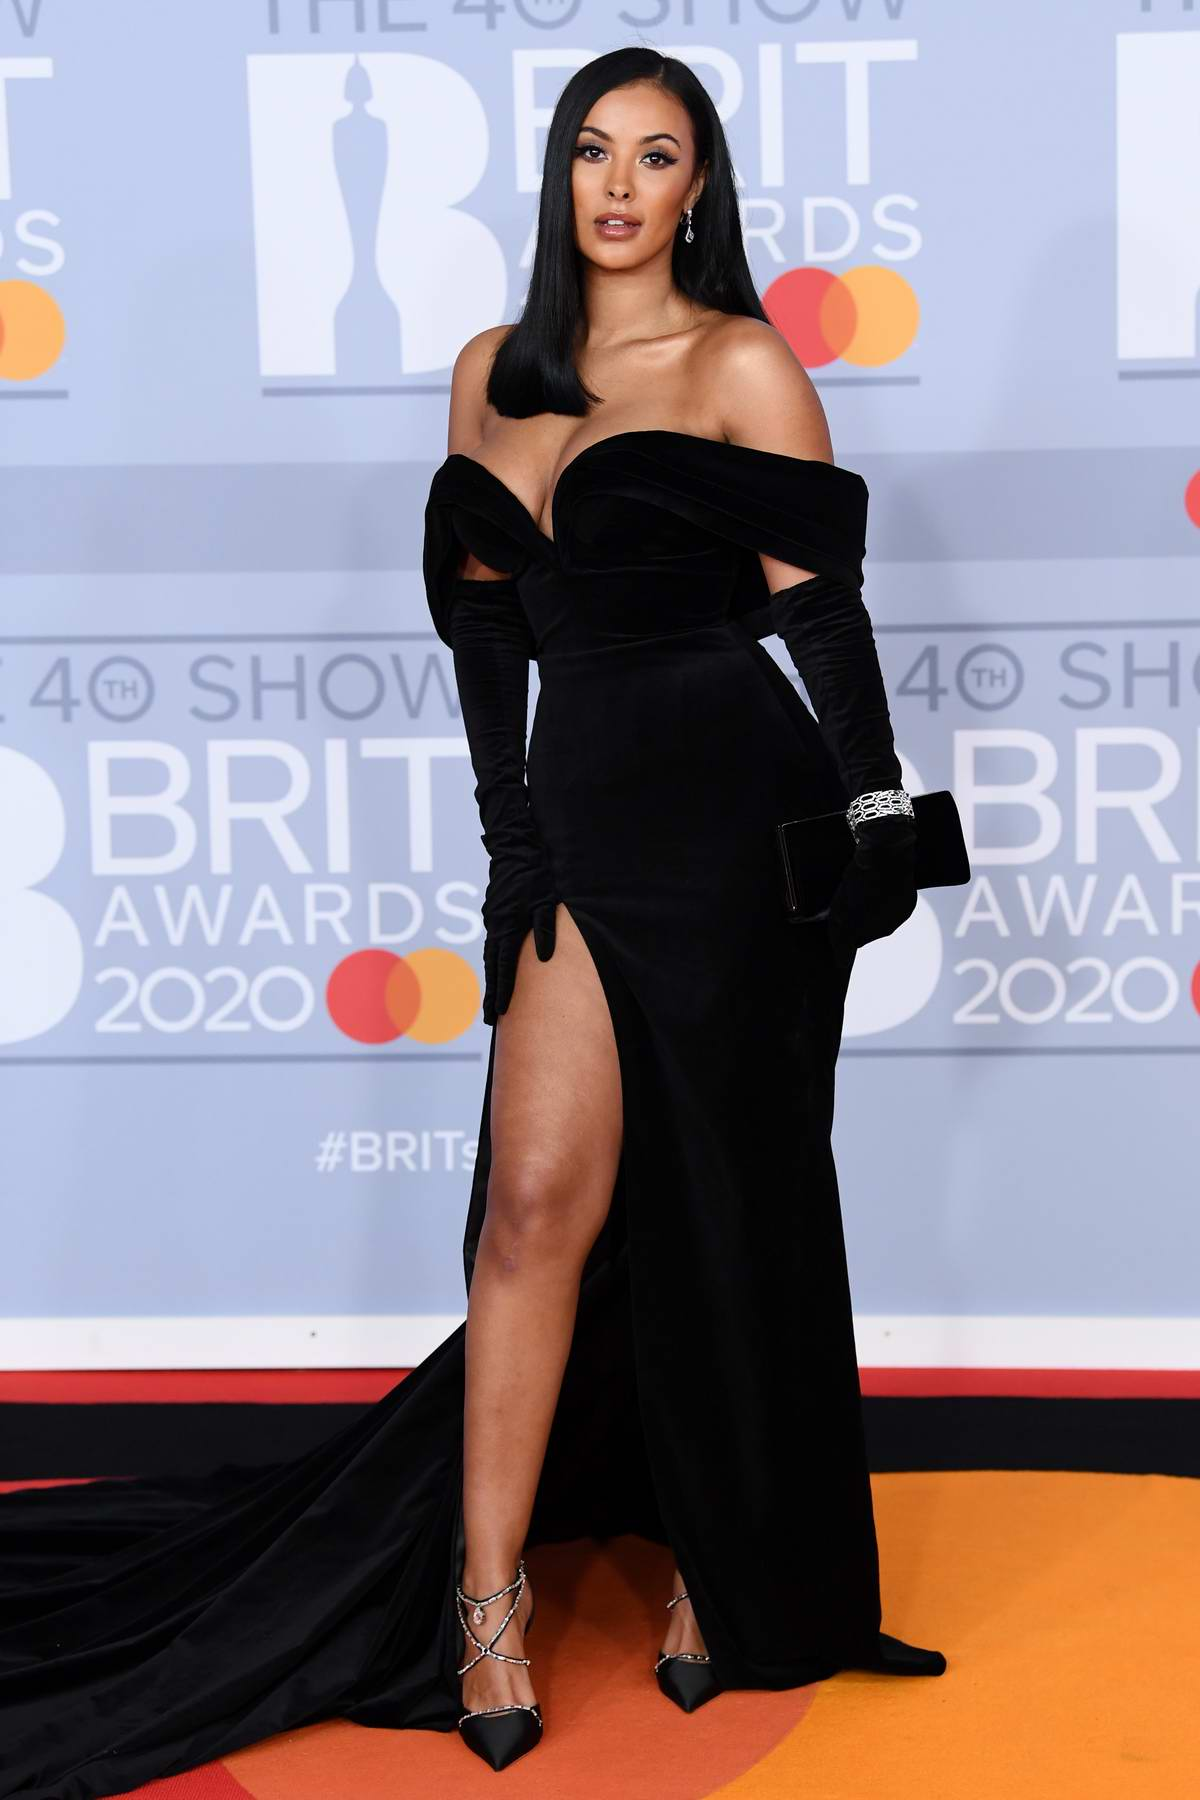 Maya Jama attends the BRIT Awards 2020 at The O2 Arena in London, UK